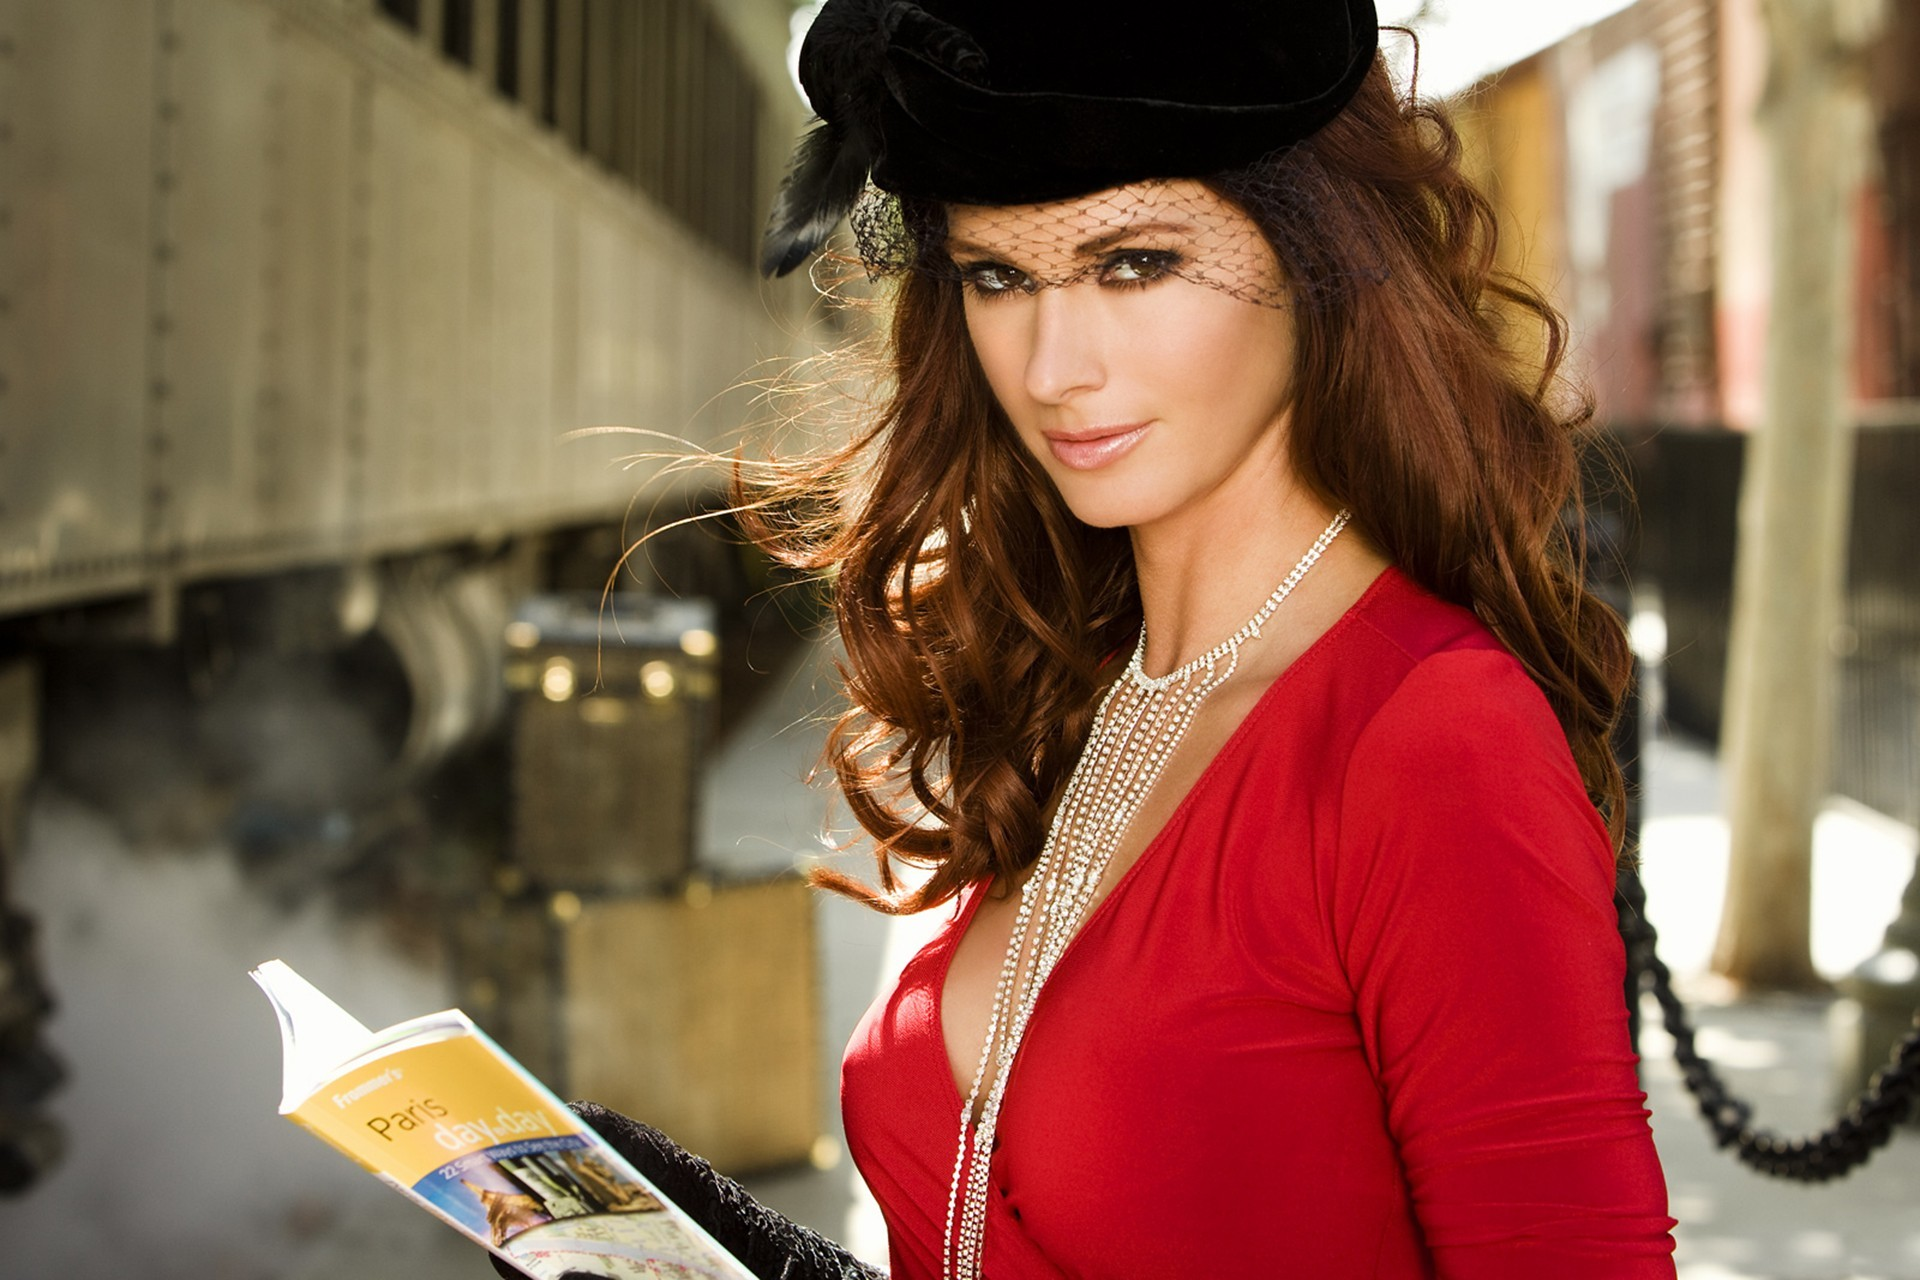 woman steam trains train HD Wallpaper